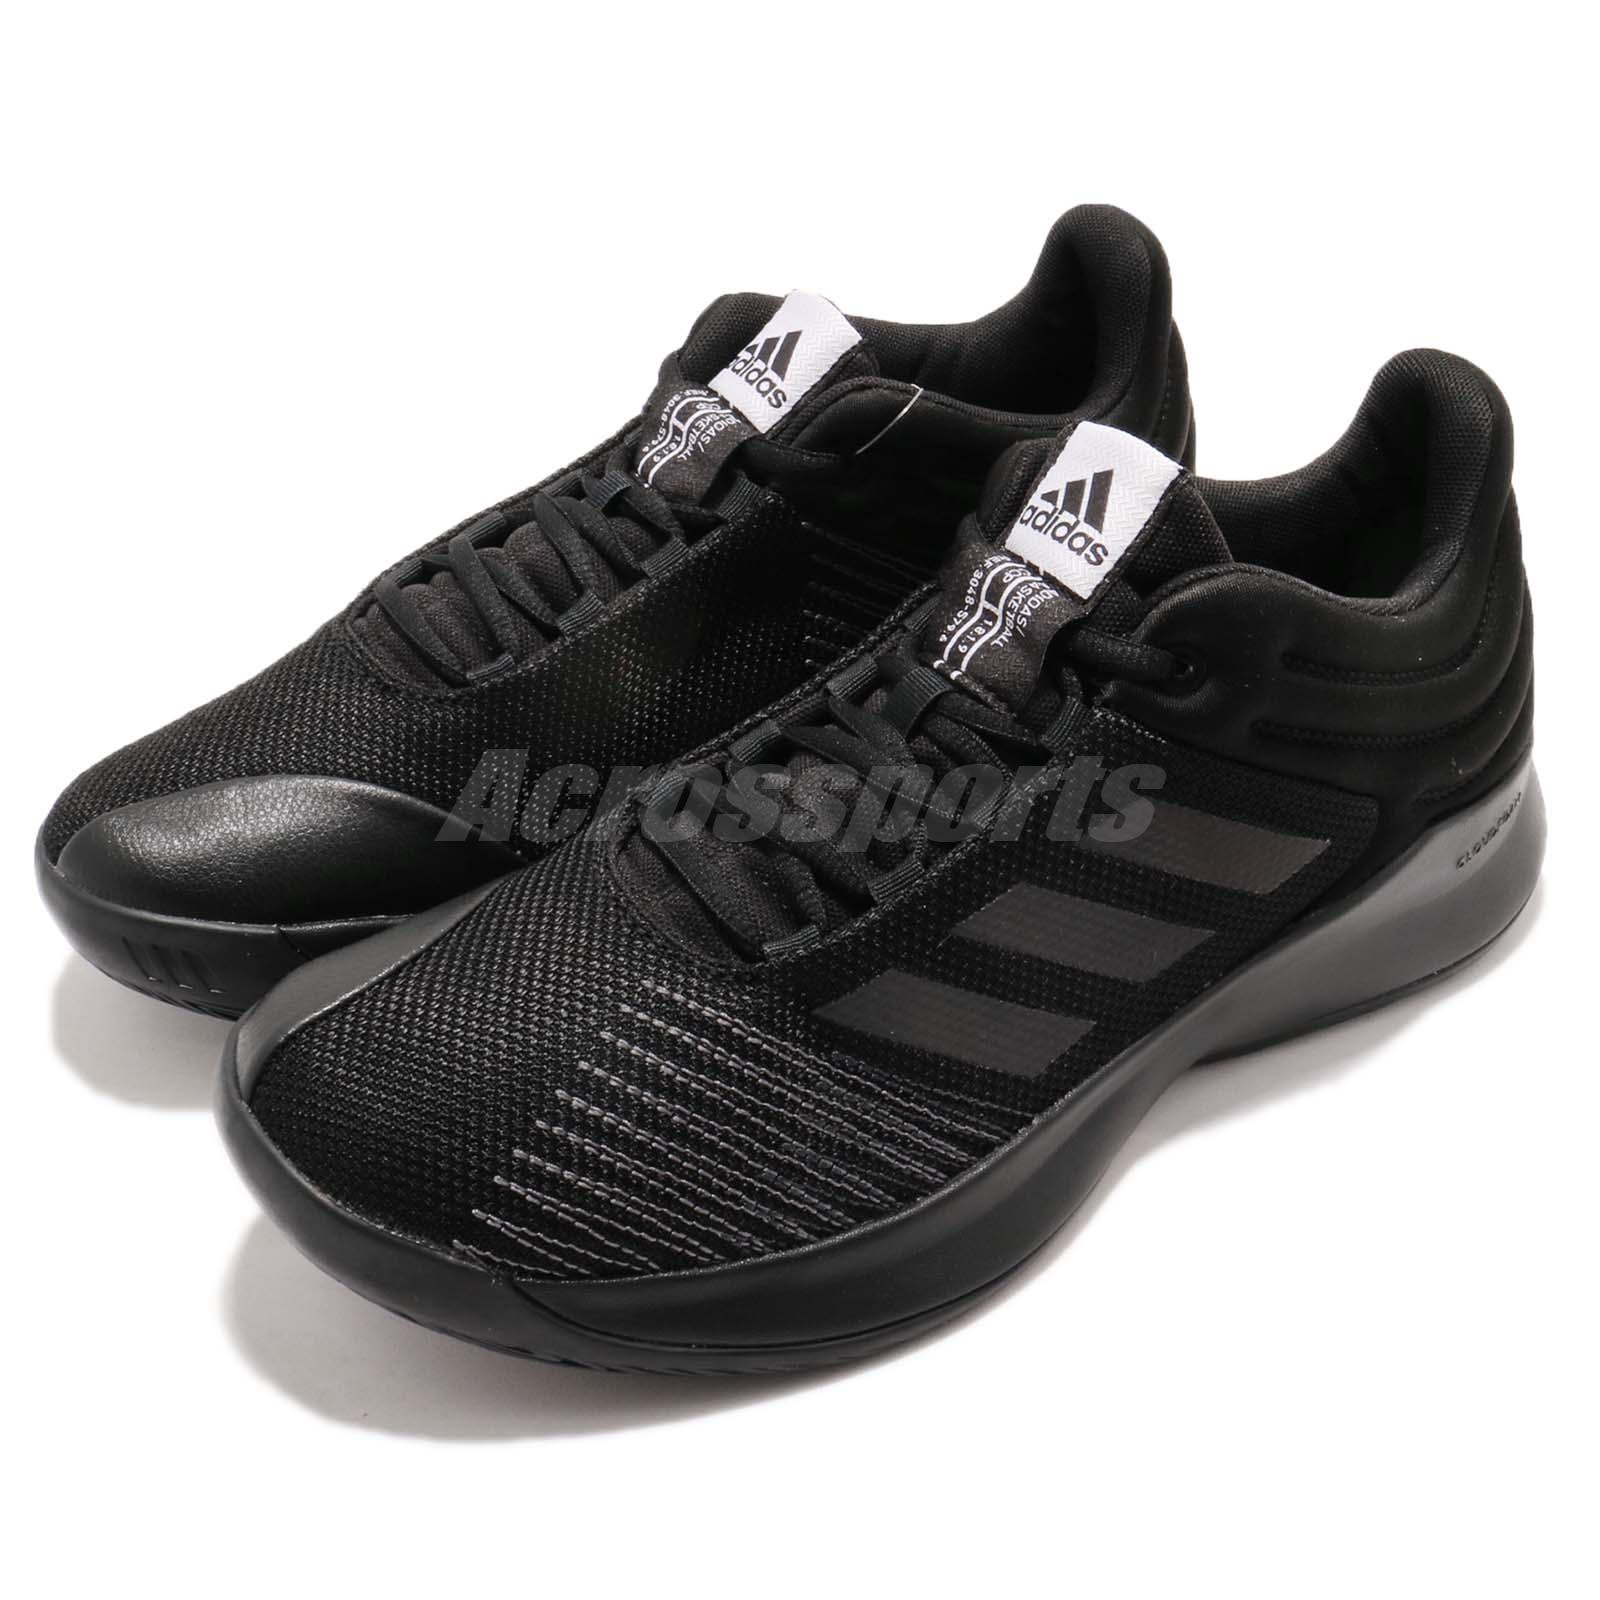 03827a88f755 Details about adidas Pro Spark Low 2018 Black White Men Basketball Shoes  Sneakers BB7539